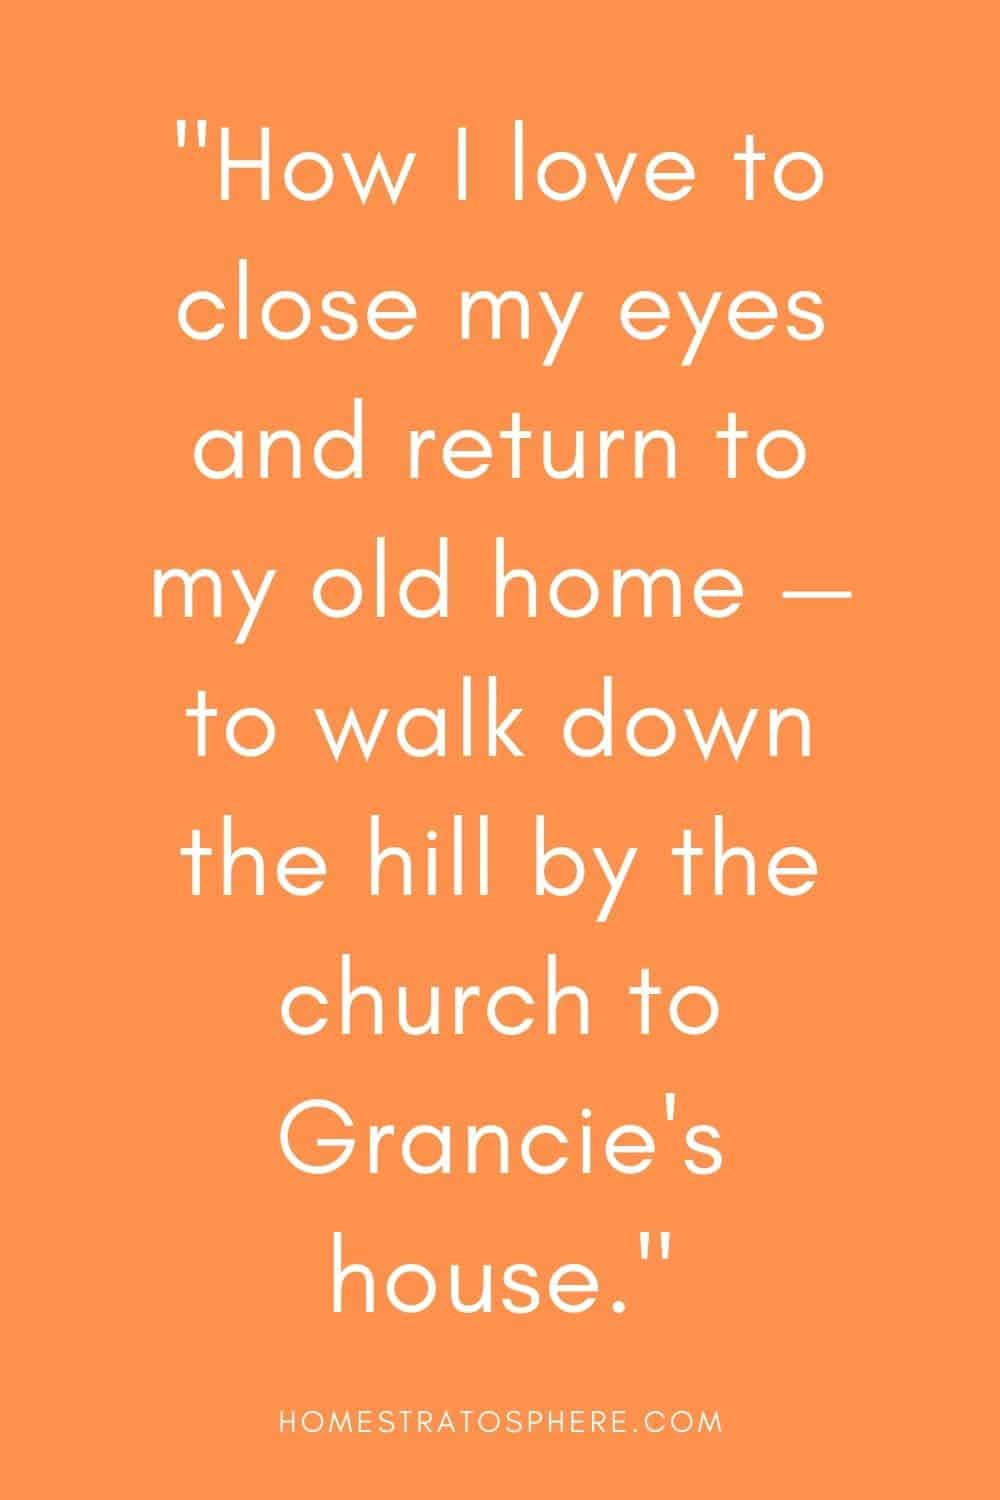 """""""How I love to close my eyes and return to my old home — to walk down the hill by the church to Grancie's house."""""""